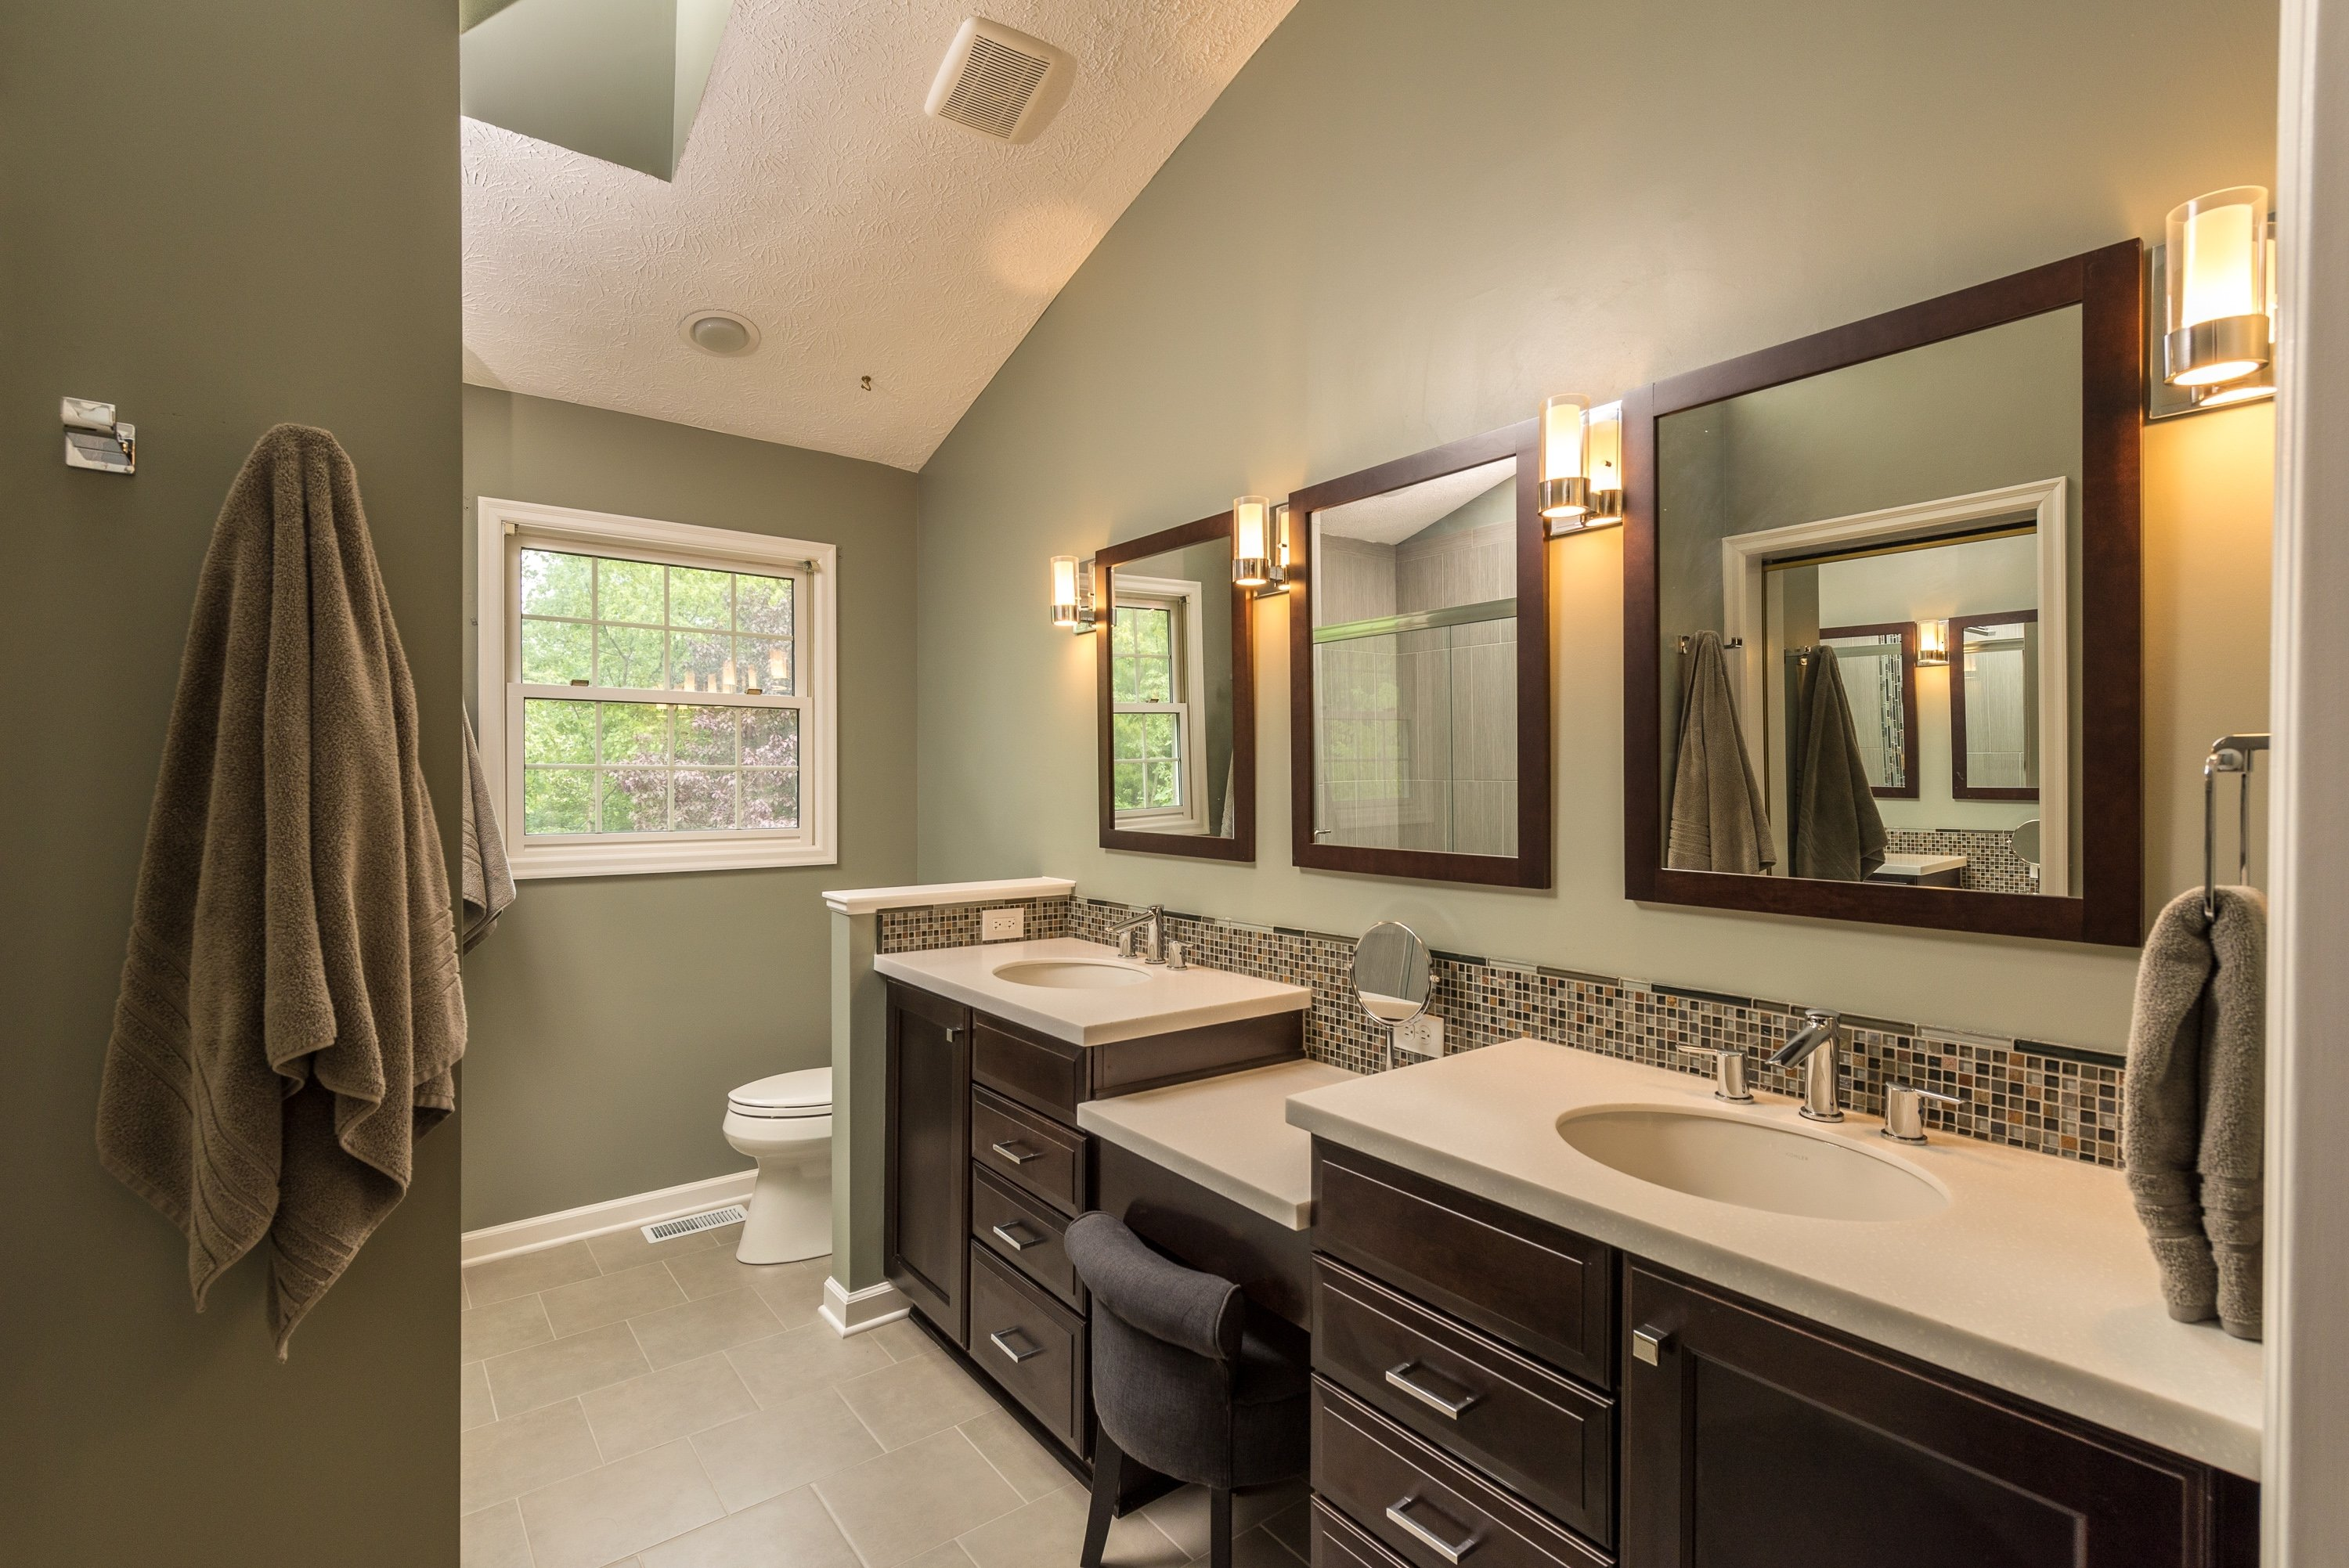 10 Most Recommended Master Bathroom Ideas Photo Gallery master bathroom ideas 2016 remodeling and renovations